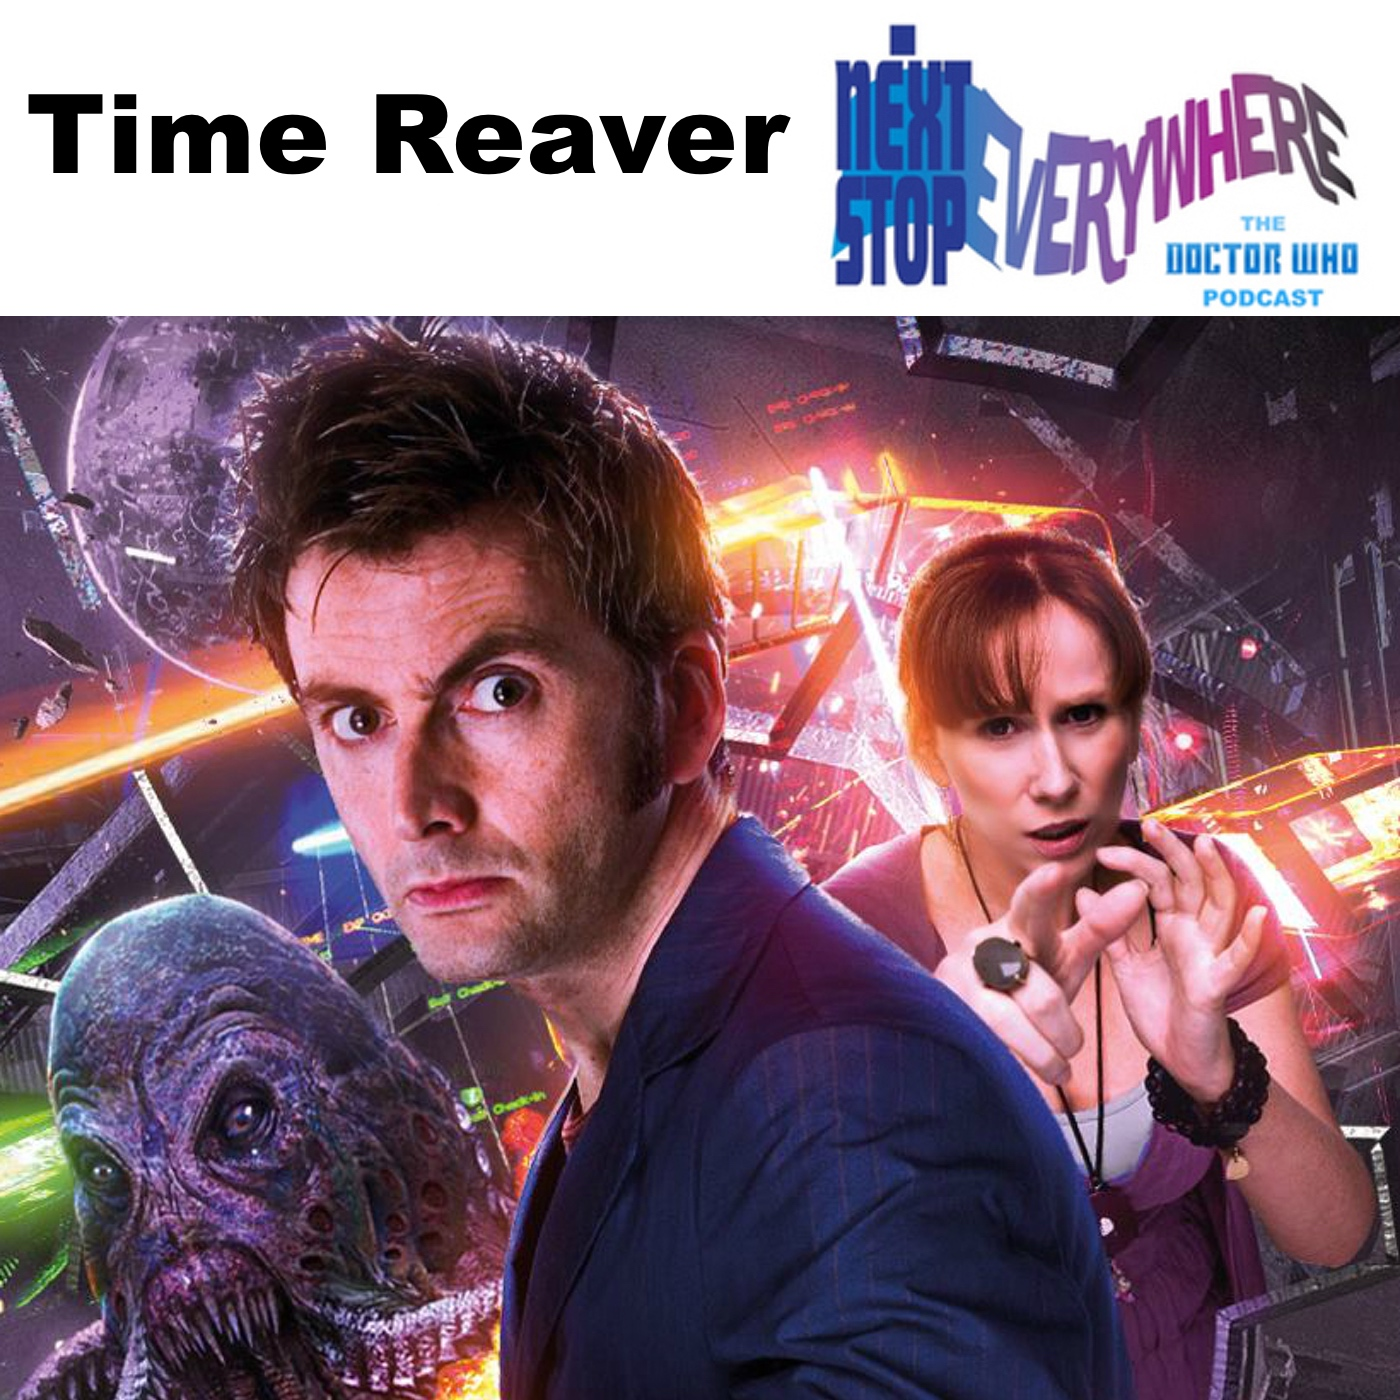 Time Reaver - Next Stop Everywhere: The Doctor Who Podcast